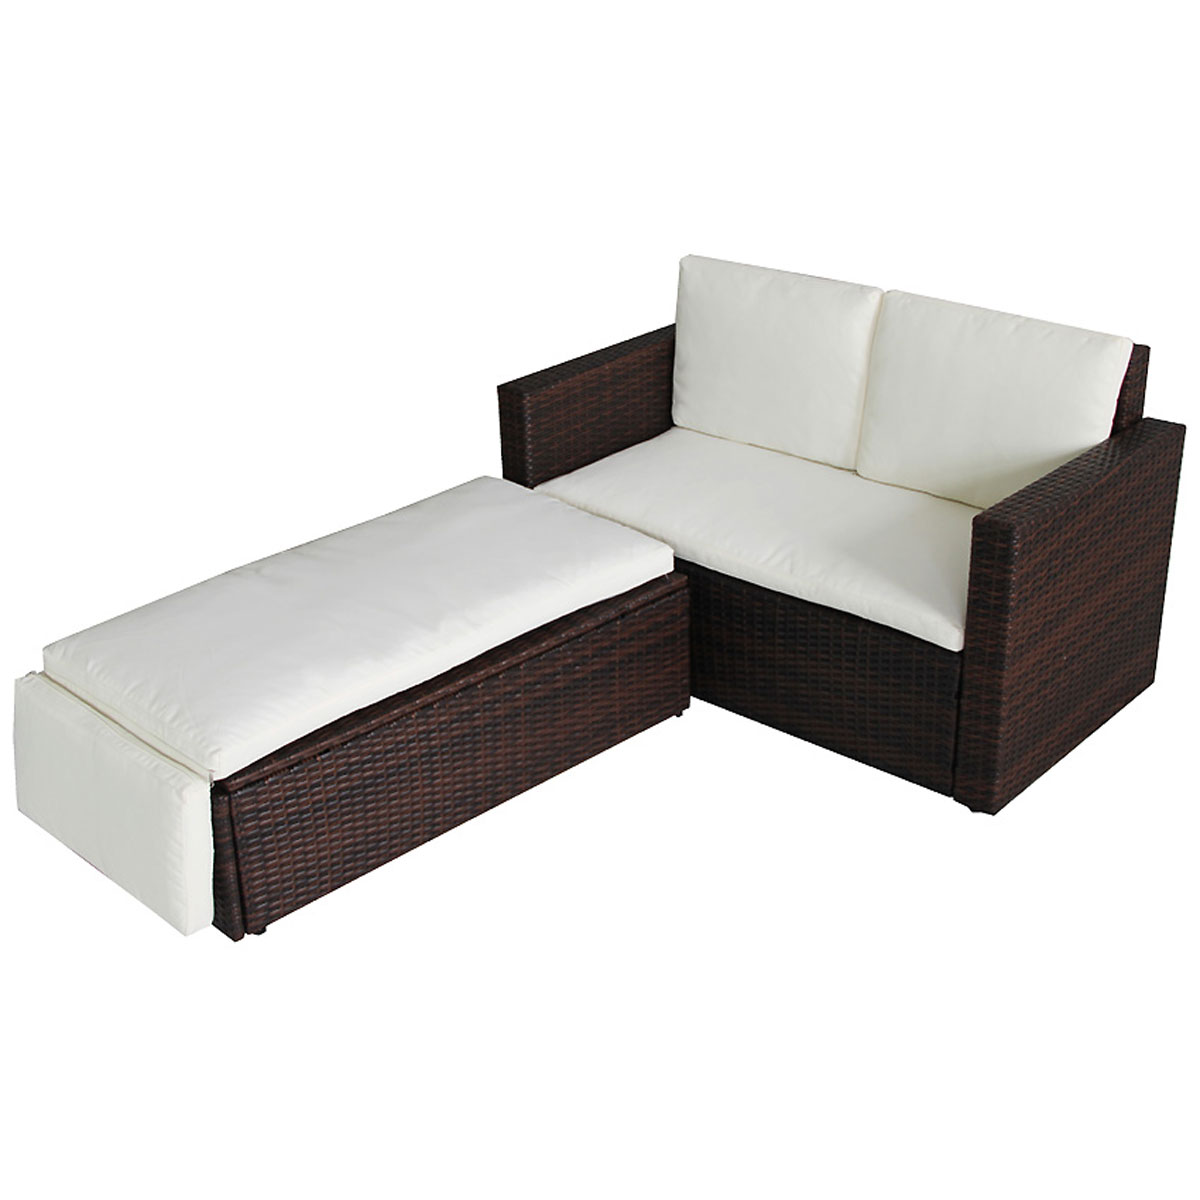 lounge sofa balkon yf08 kyushucon. Black Bedroom Furniture Sets. Home Design Ideas